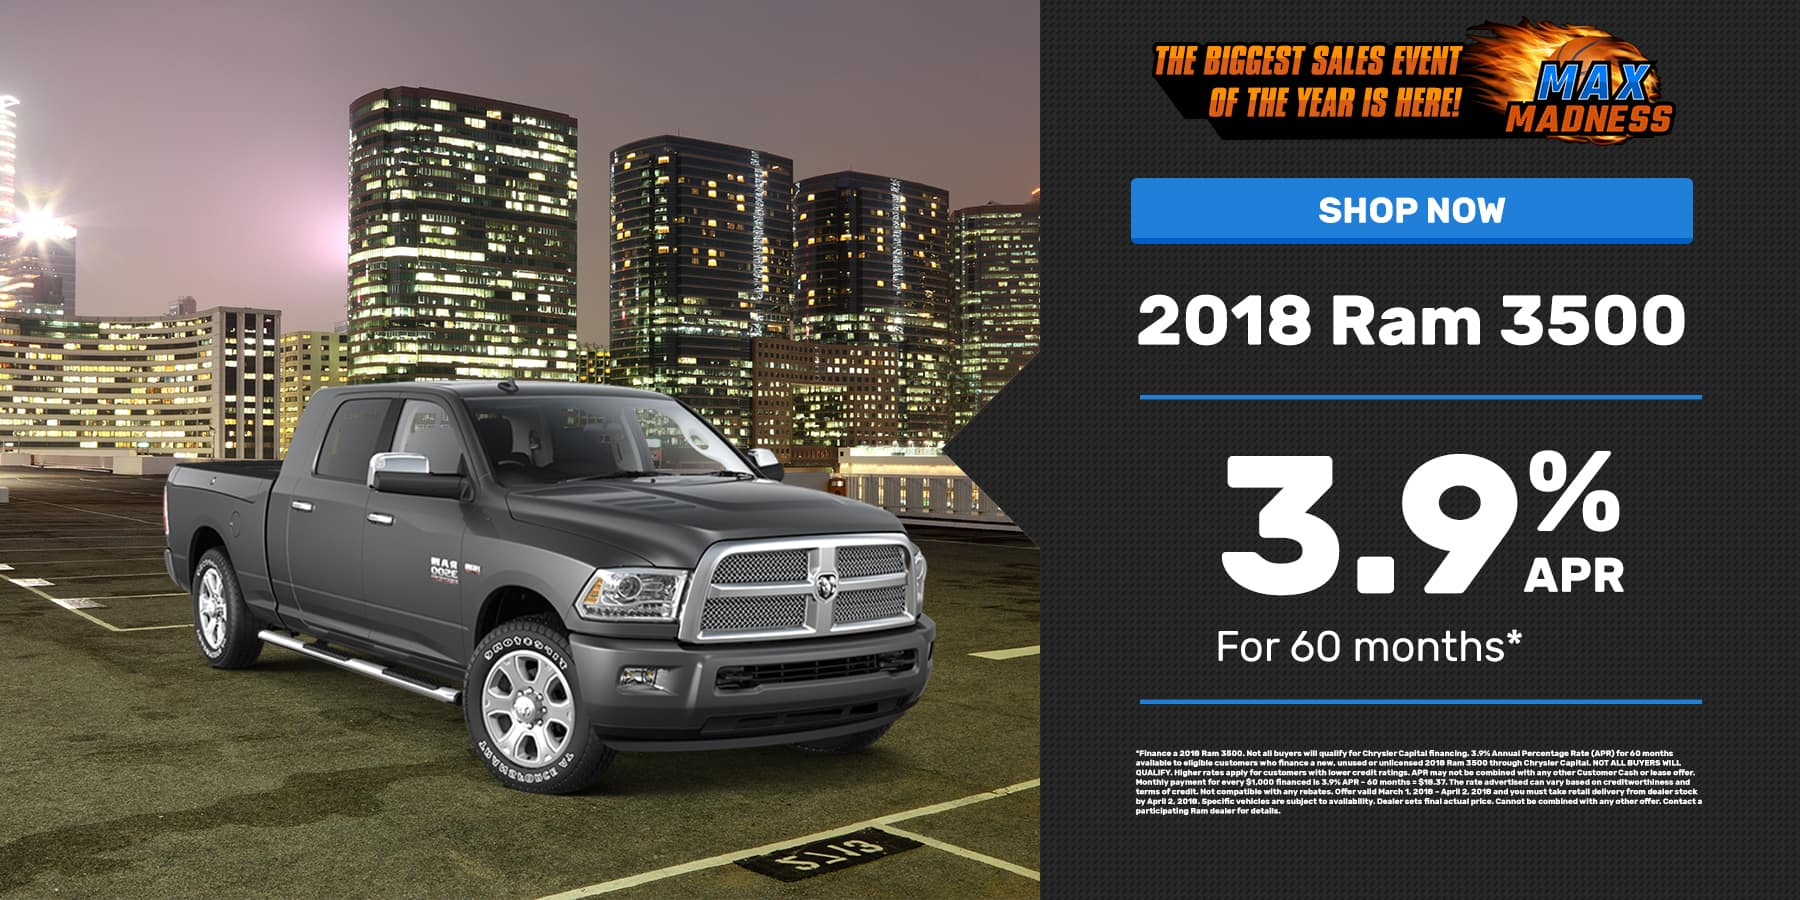 March 2018 RAM 3500 Offer Slide